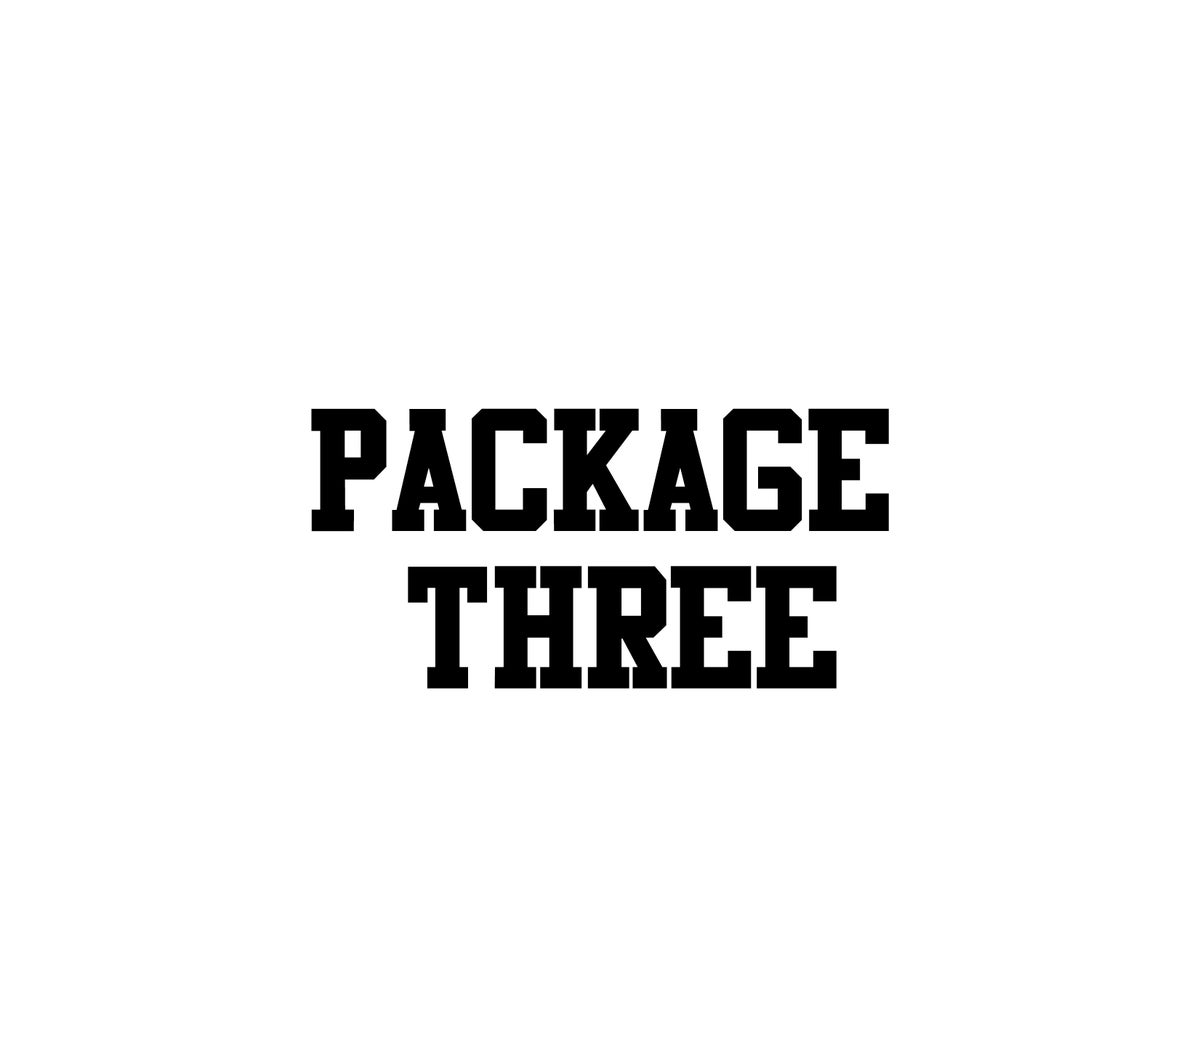 PACKAGE THREE